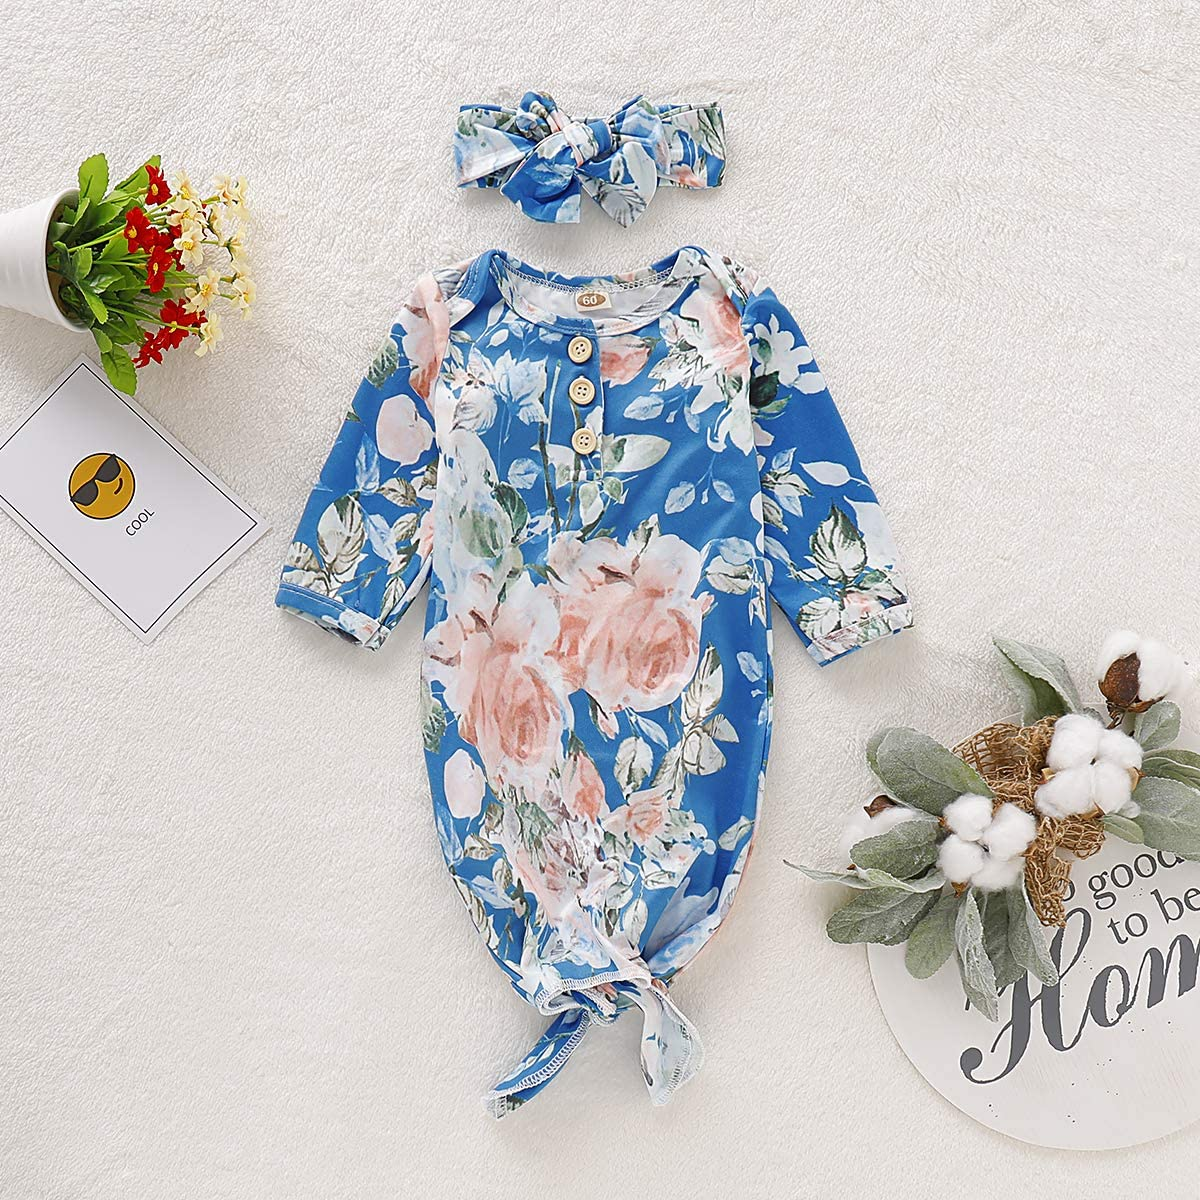 Newborn Infant Baby Girls Fall Outfit Night Gown Sleepwear Romper Jumpsuit Bodysuit 2Pc Winter Clothes Set